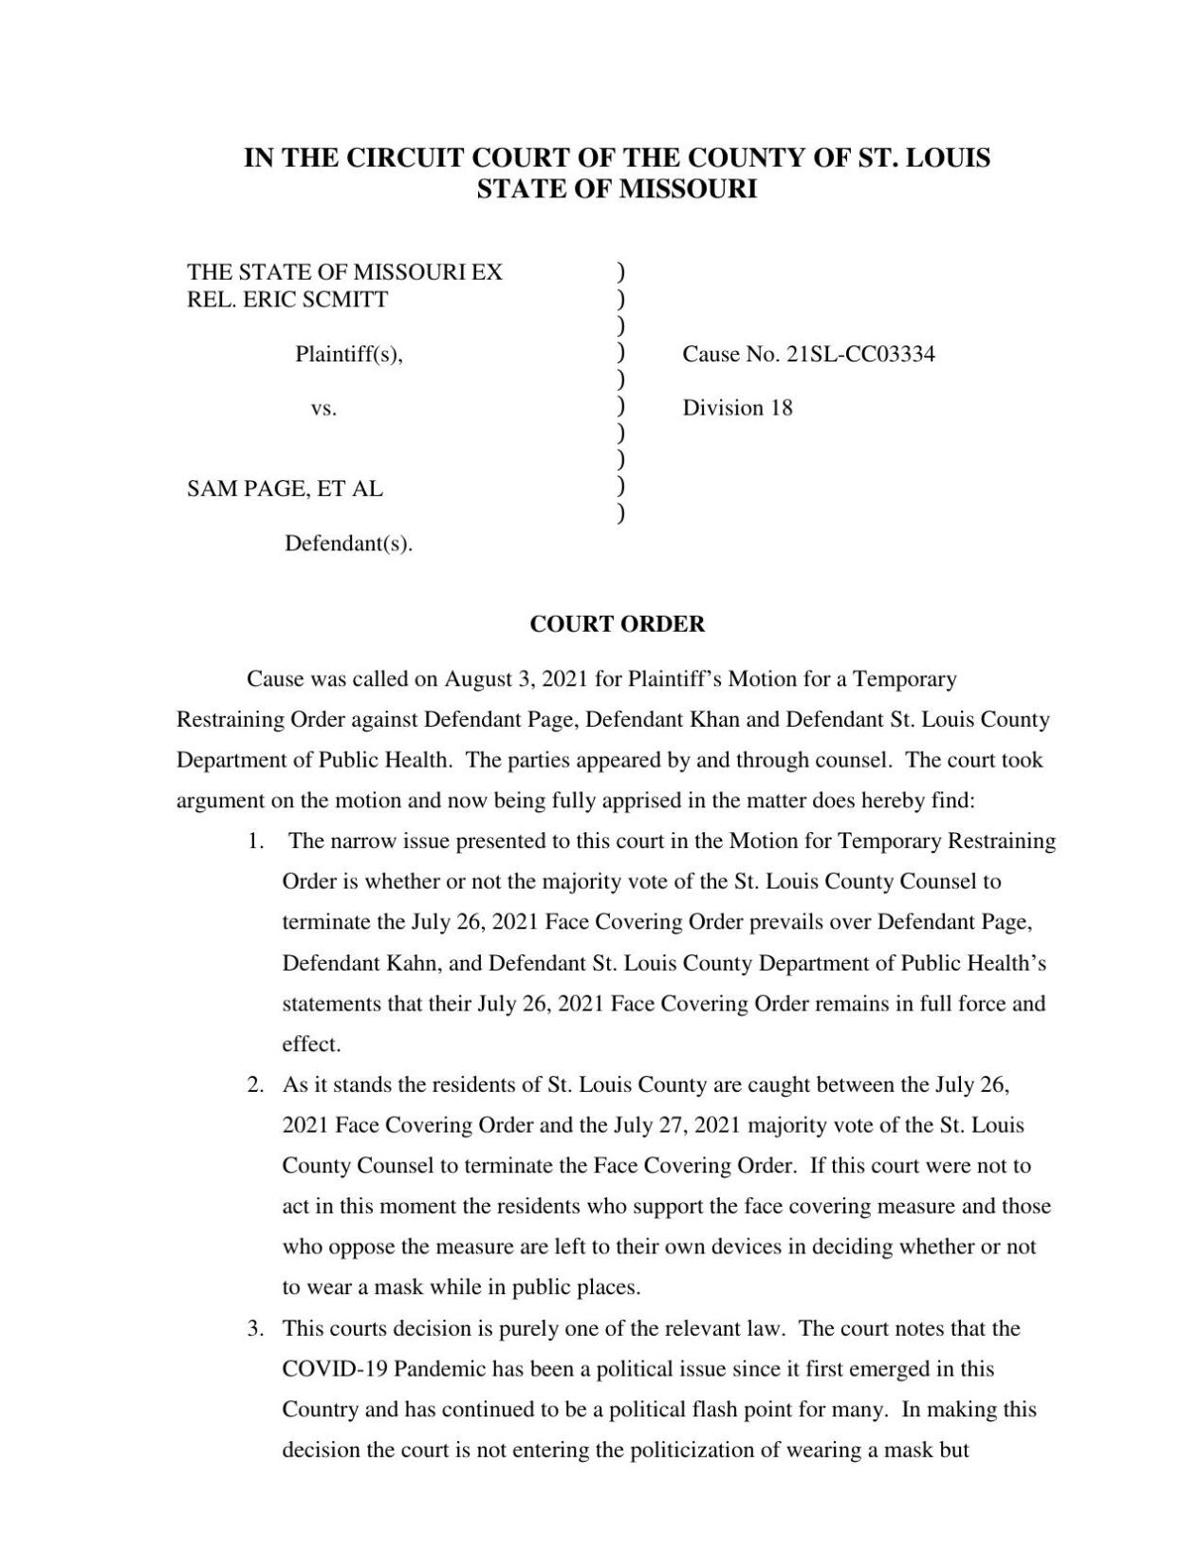 Read the judge's order blocking enforcement of the county mask mandate